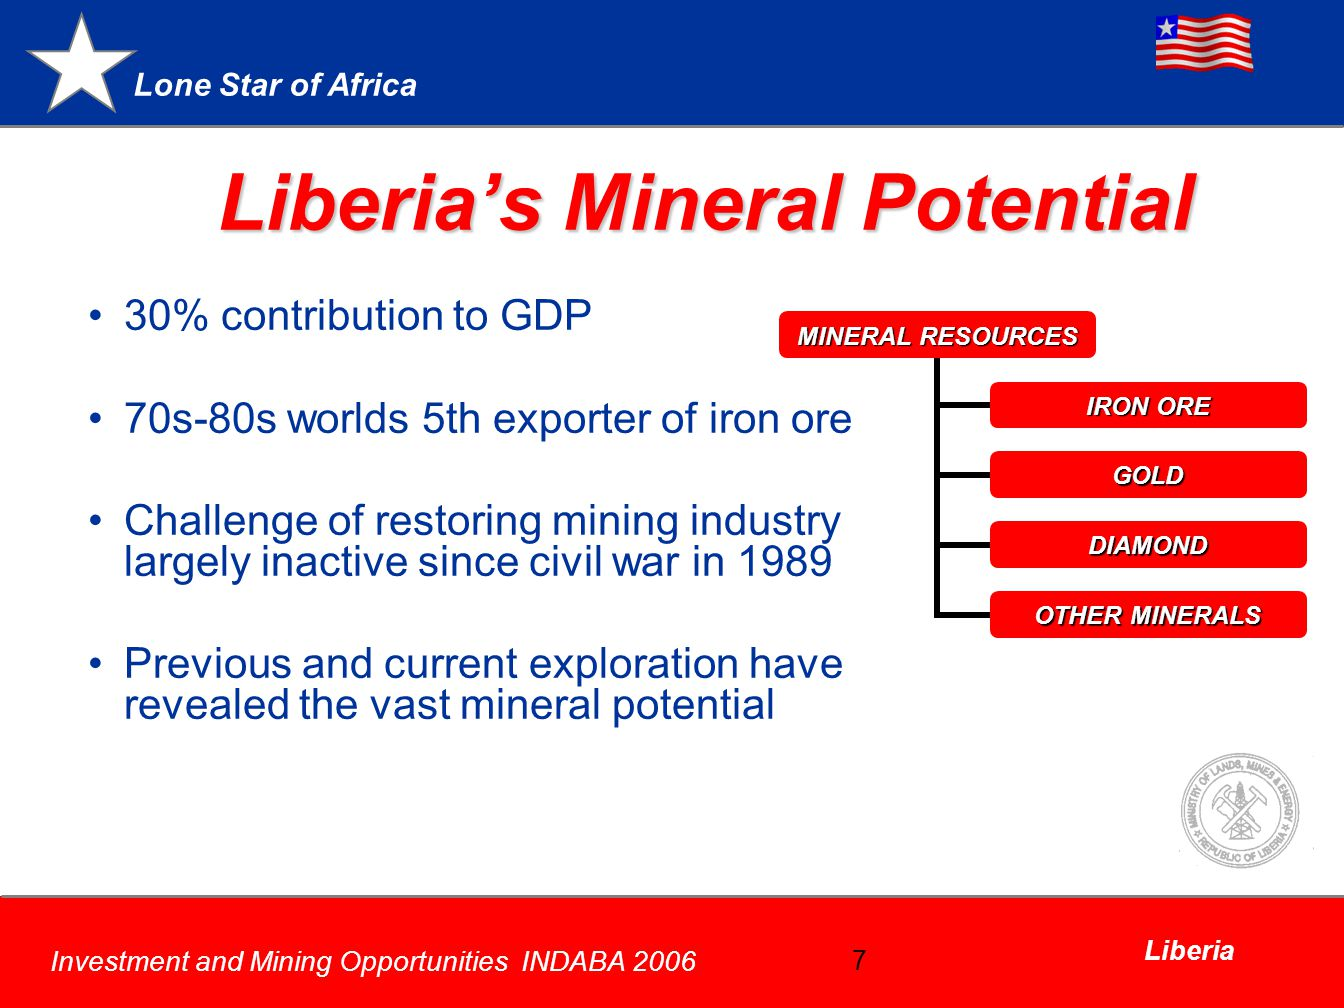 Lone Star of Africa Investment and Mining Opportunities INDABA 2006 Liberia 7 Liberias Mineral Potential 30% contribution to GDP 70s-80s worlds 5th exporter of iron ore Challenge of restoring mining industry largely inactive since civil war in 1989 Previous and current exploration have revealed the vast mineral potential MINERAL RESOURCES IRON ORE GOLD DIAMOND OTHER MINERALS